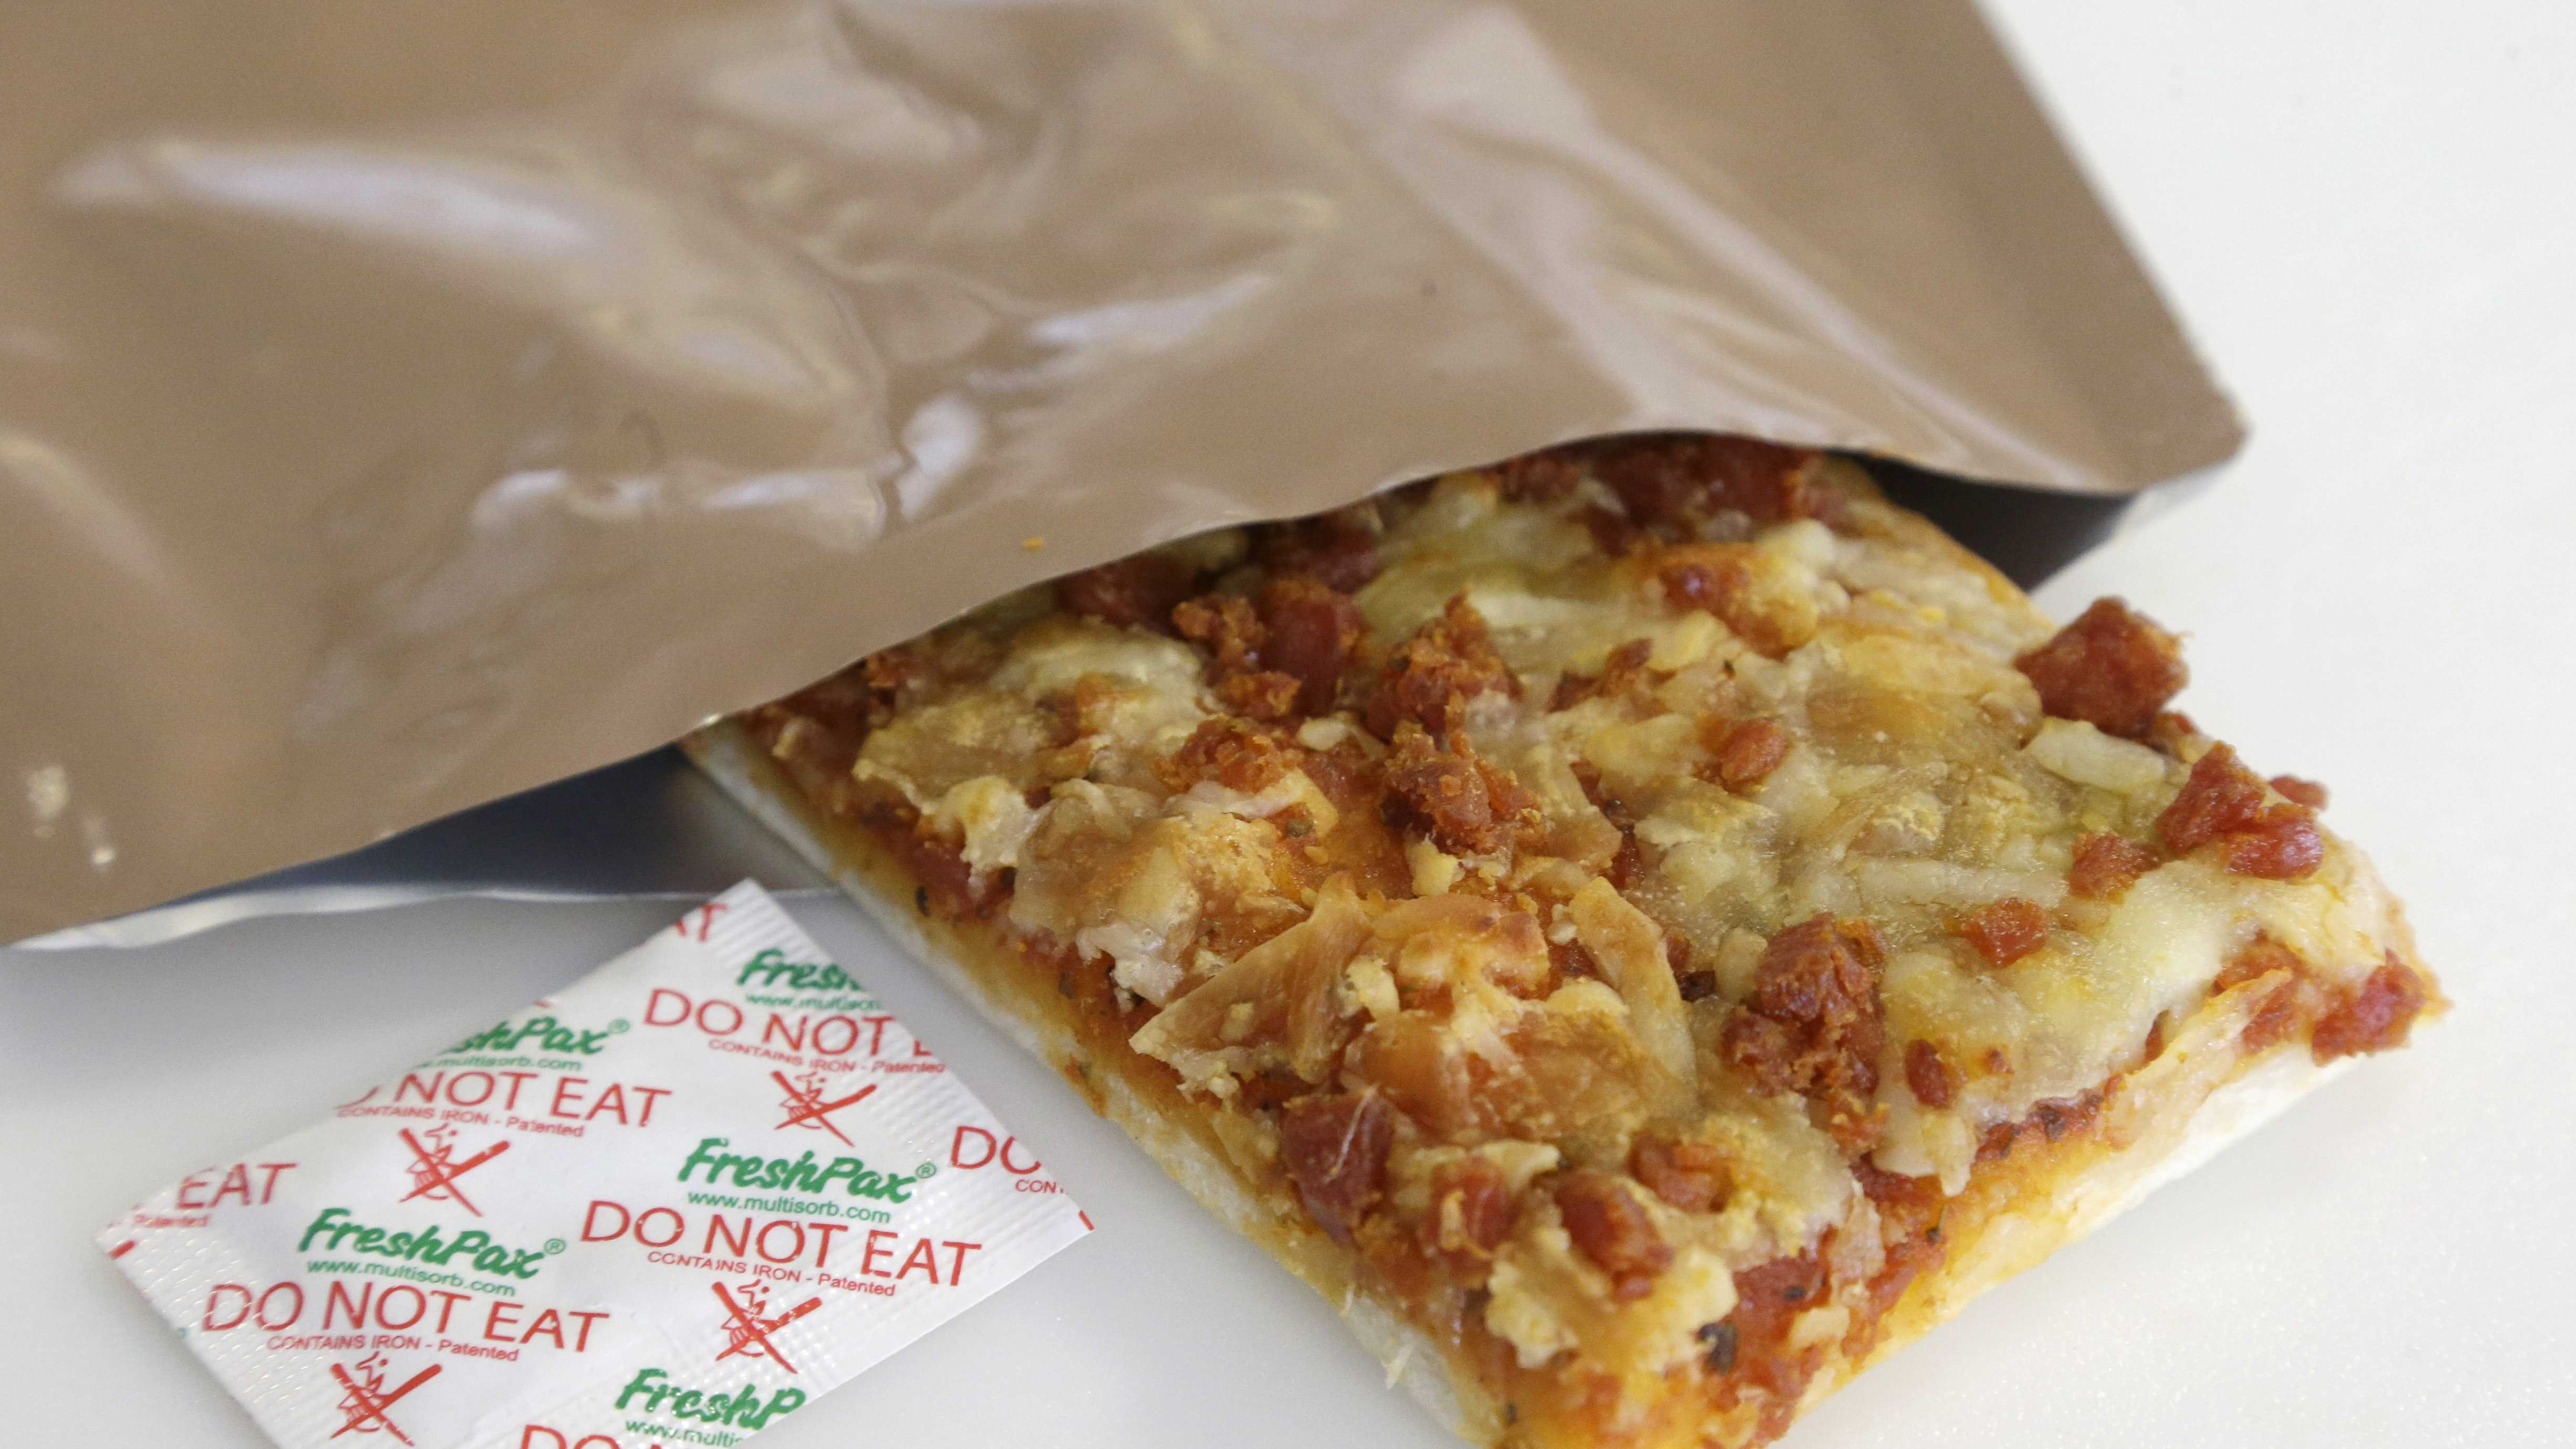 A slice of prototype pizza, in development to be used in MRE's — meals ready to eat, sits in a packet next to a smaller packet known as an oxygen scavenger, left, at the U.S. Army Natick Soldier Research, Development and Engineering Center.